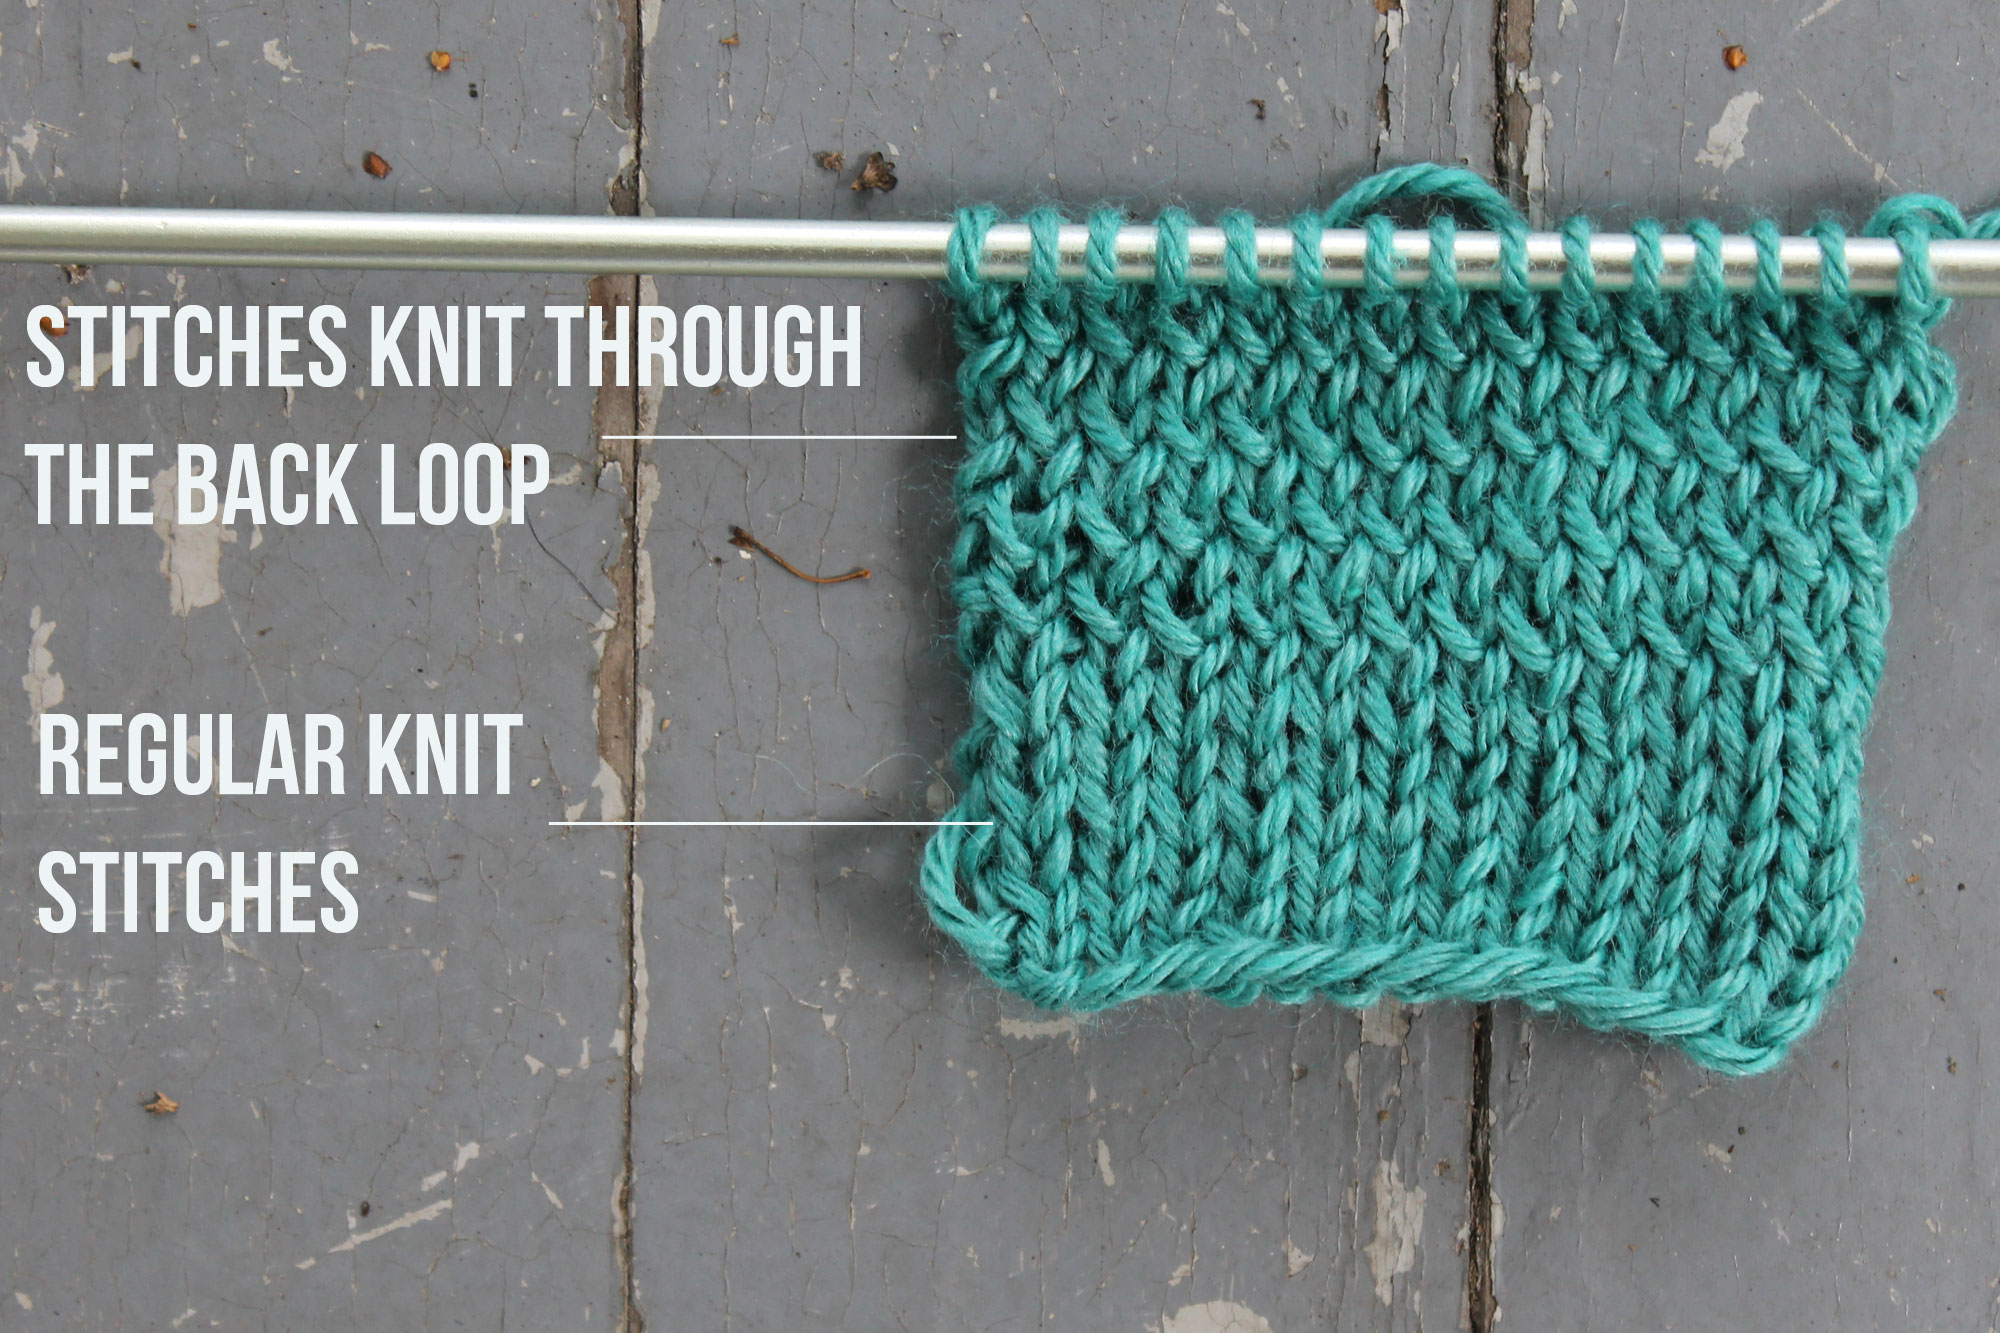 The difference between knit stitches and knitting through the back loop